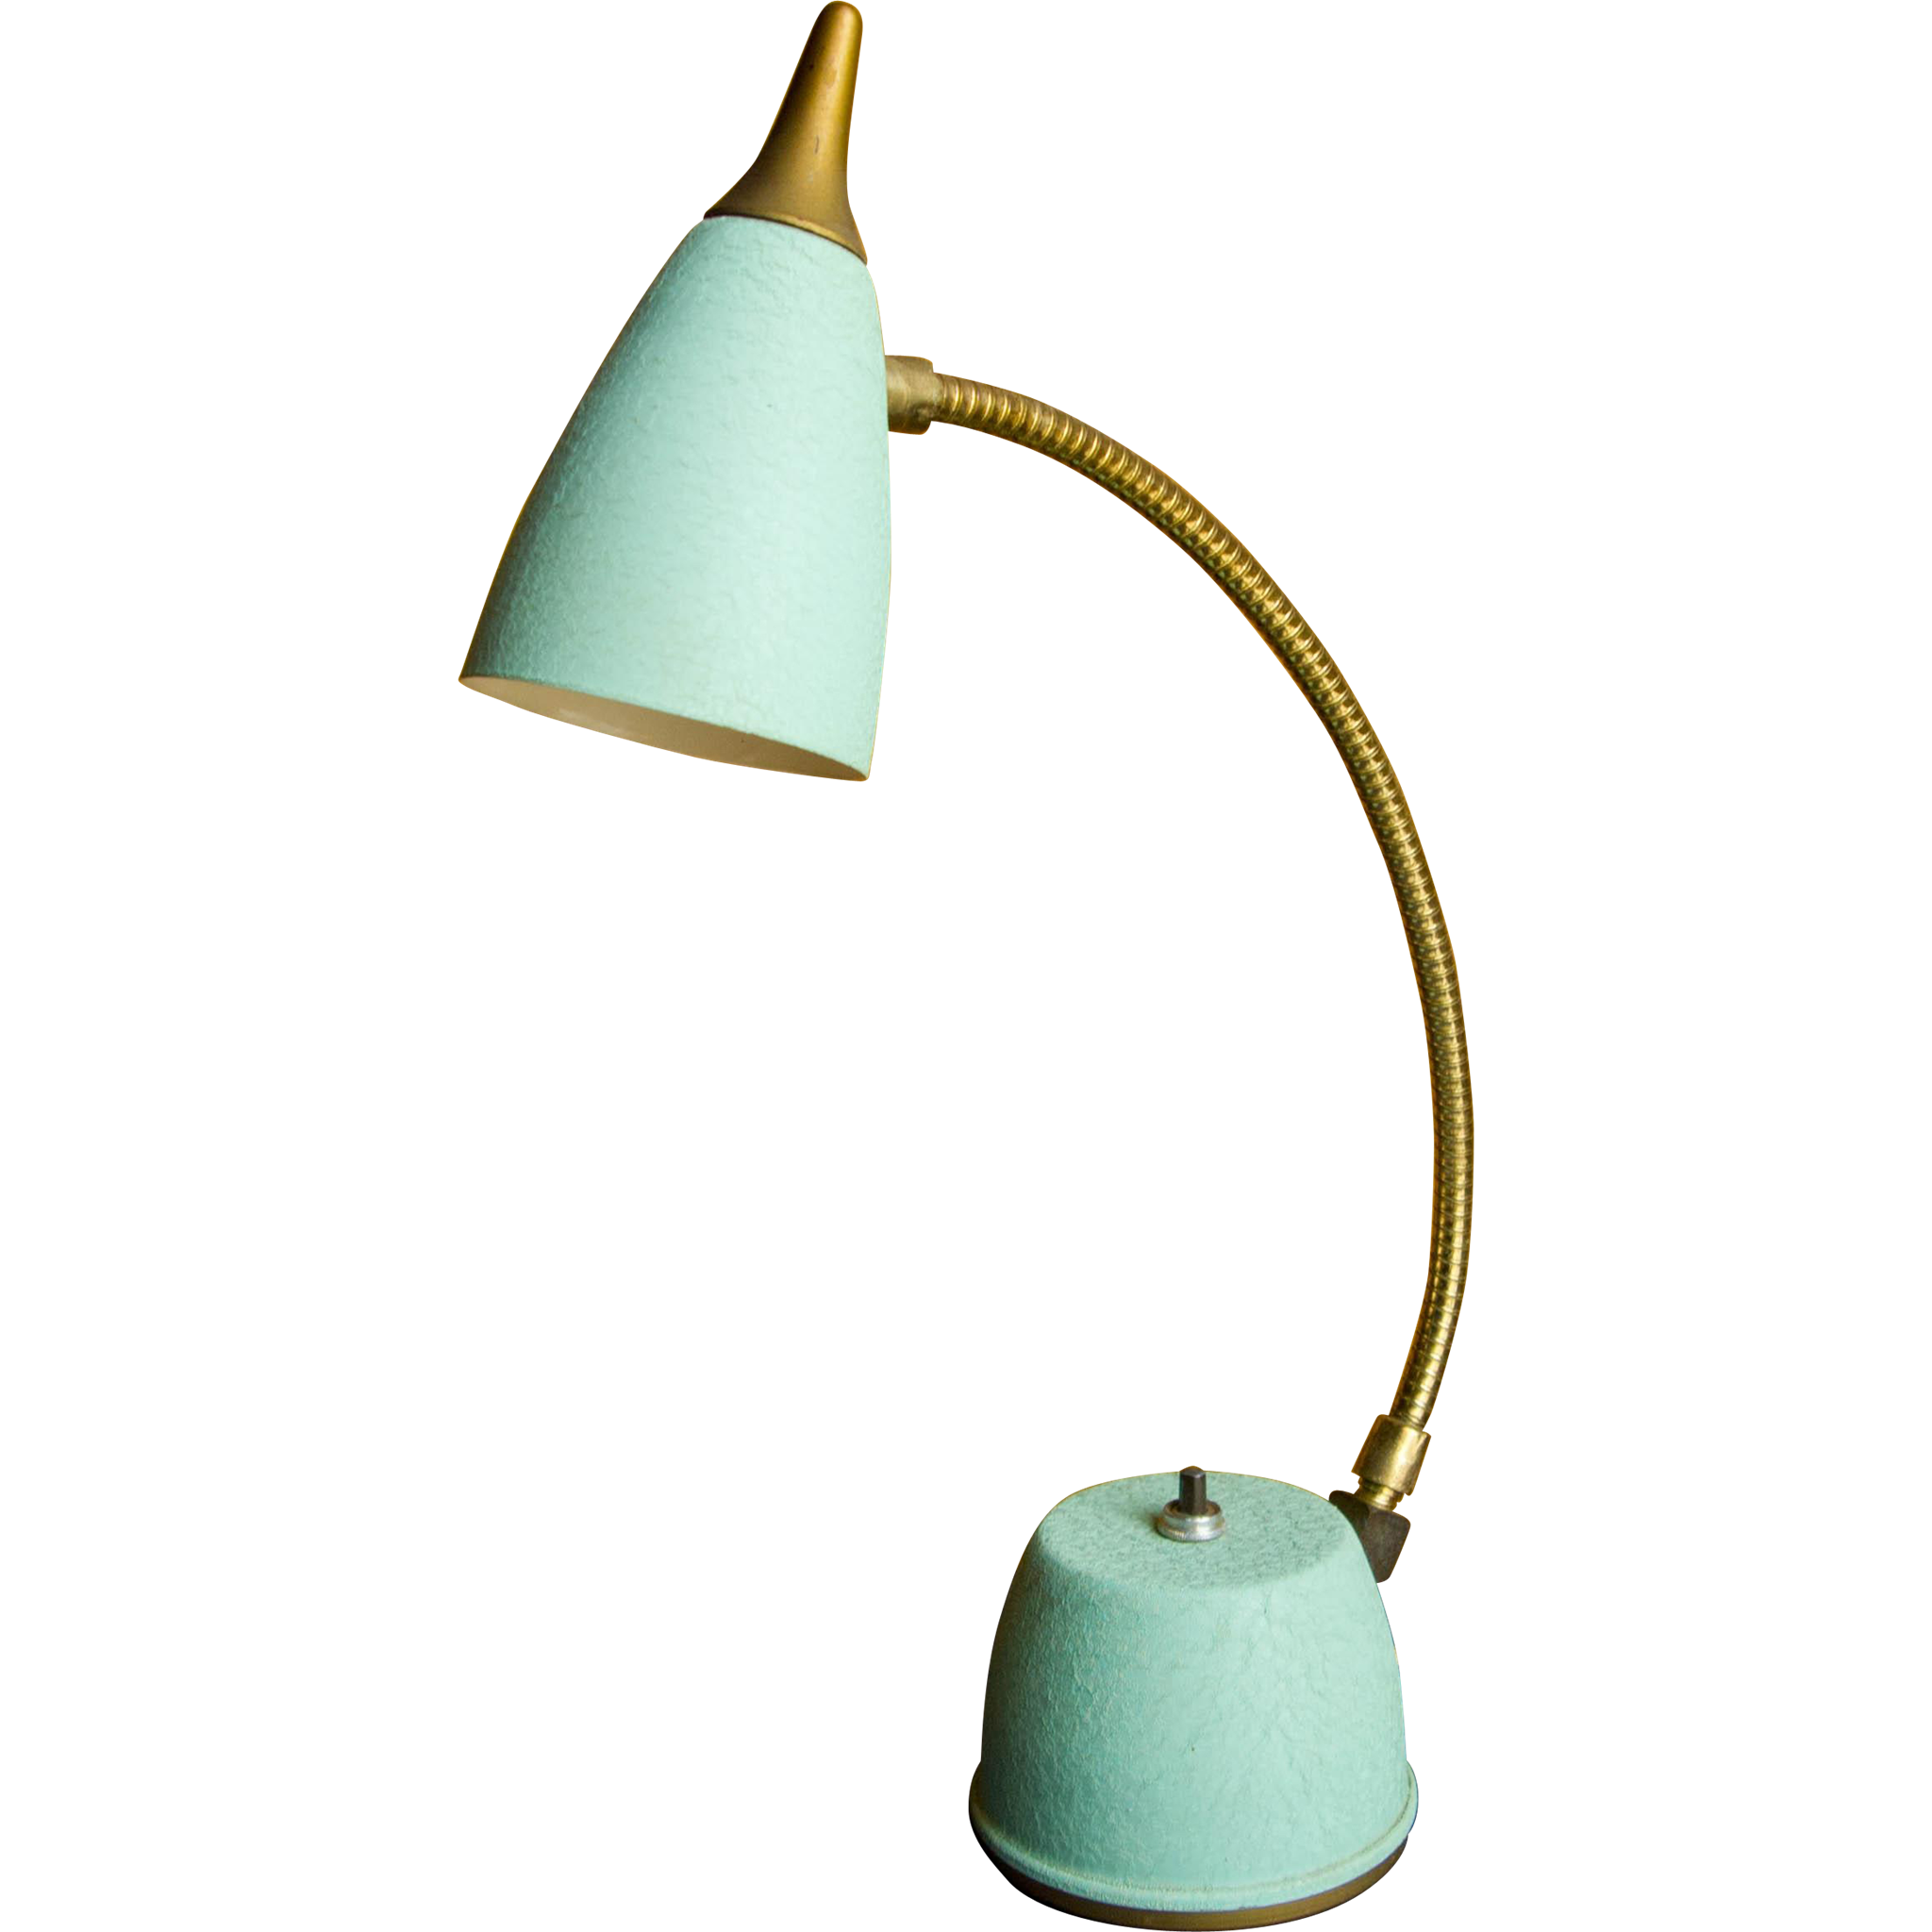 Desk lamp png. Vintage aqua green hi